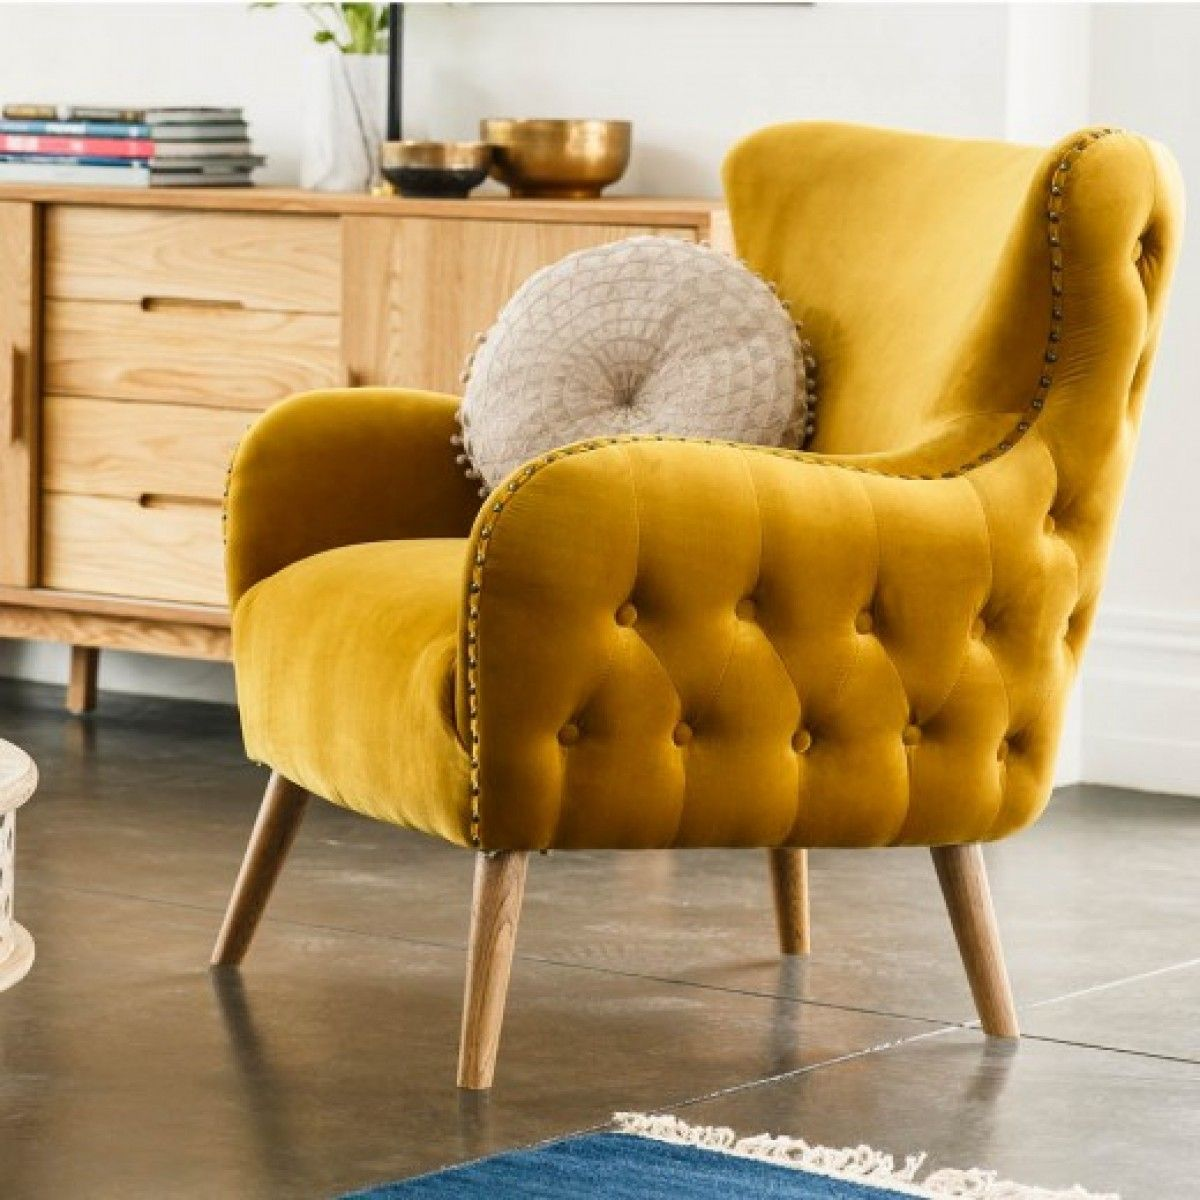 999 Clementine Armchair Gold With Oak Legs Early Settler Living Room Upholstery Couch Upholstery Furniture Upholstery